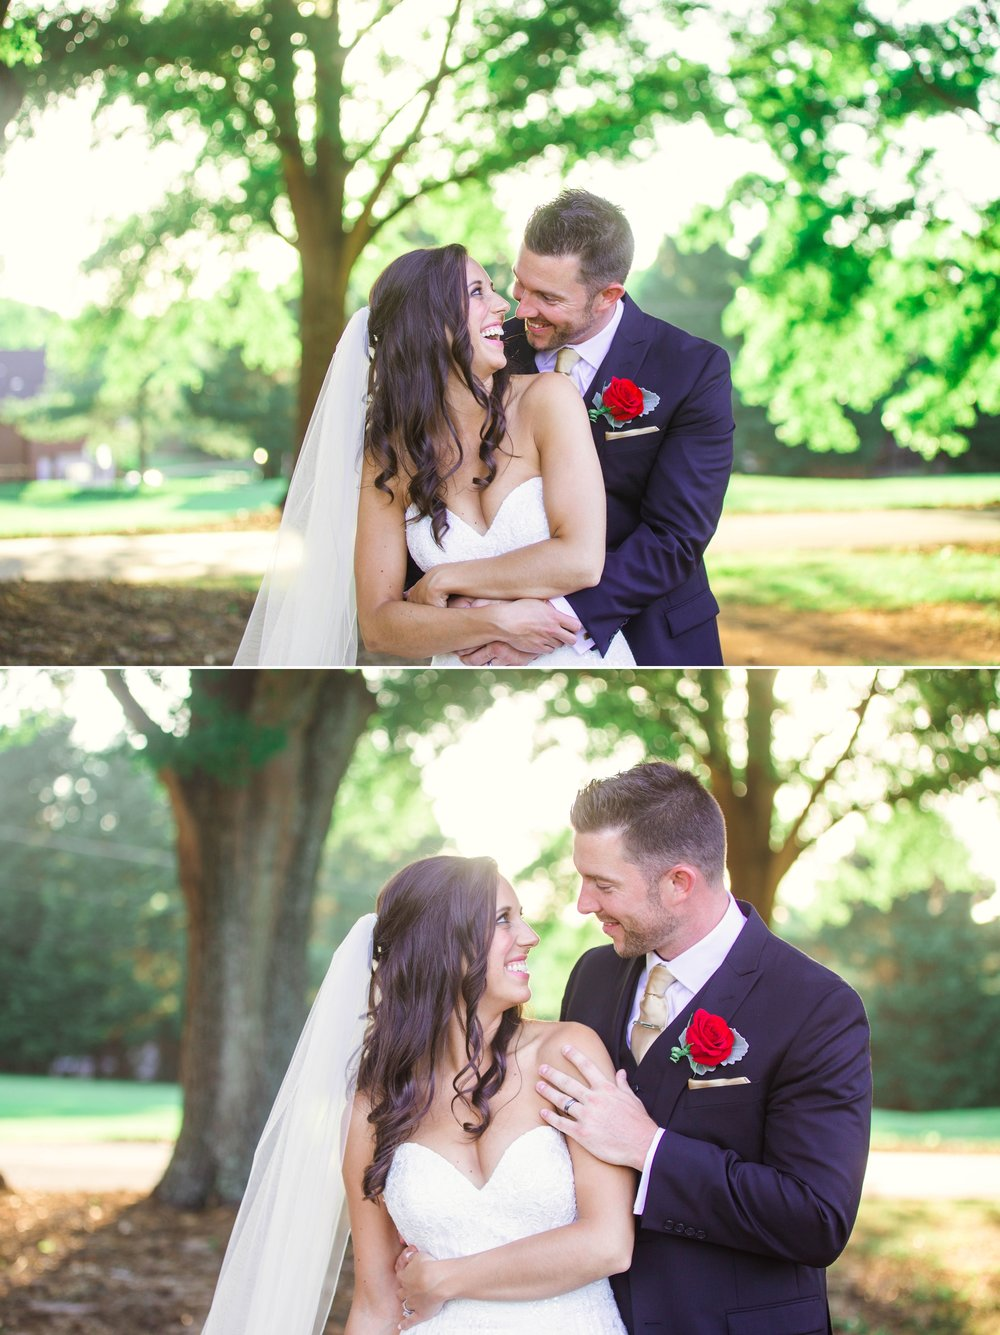 Wedding Photography at the Cabarrus Country Club in Concord NC - Charlotte North Carolina Photographer